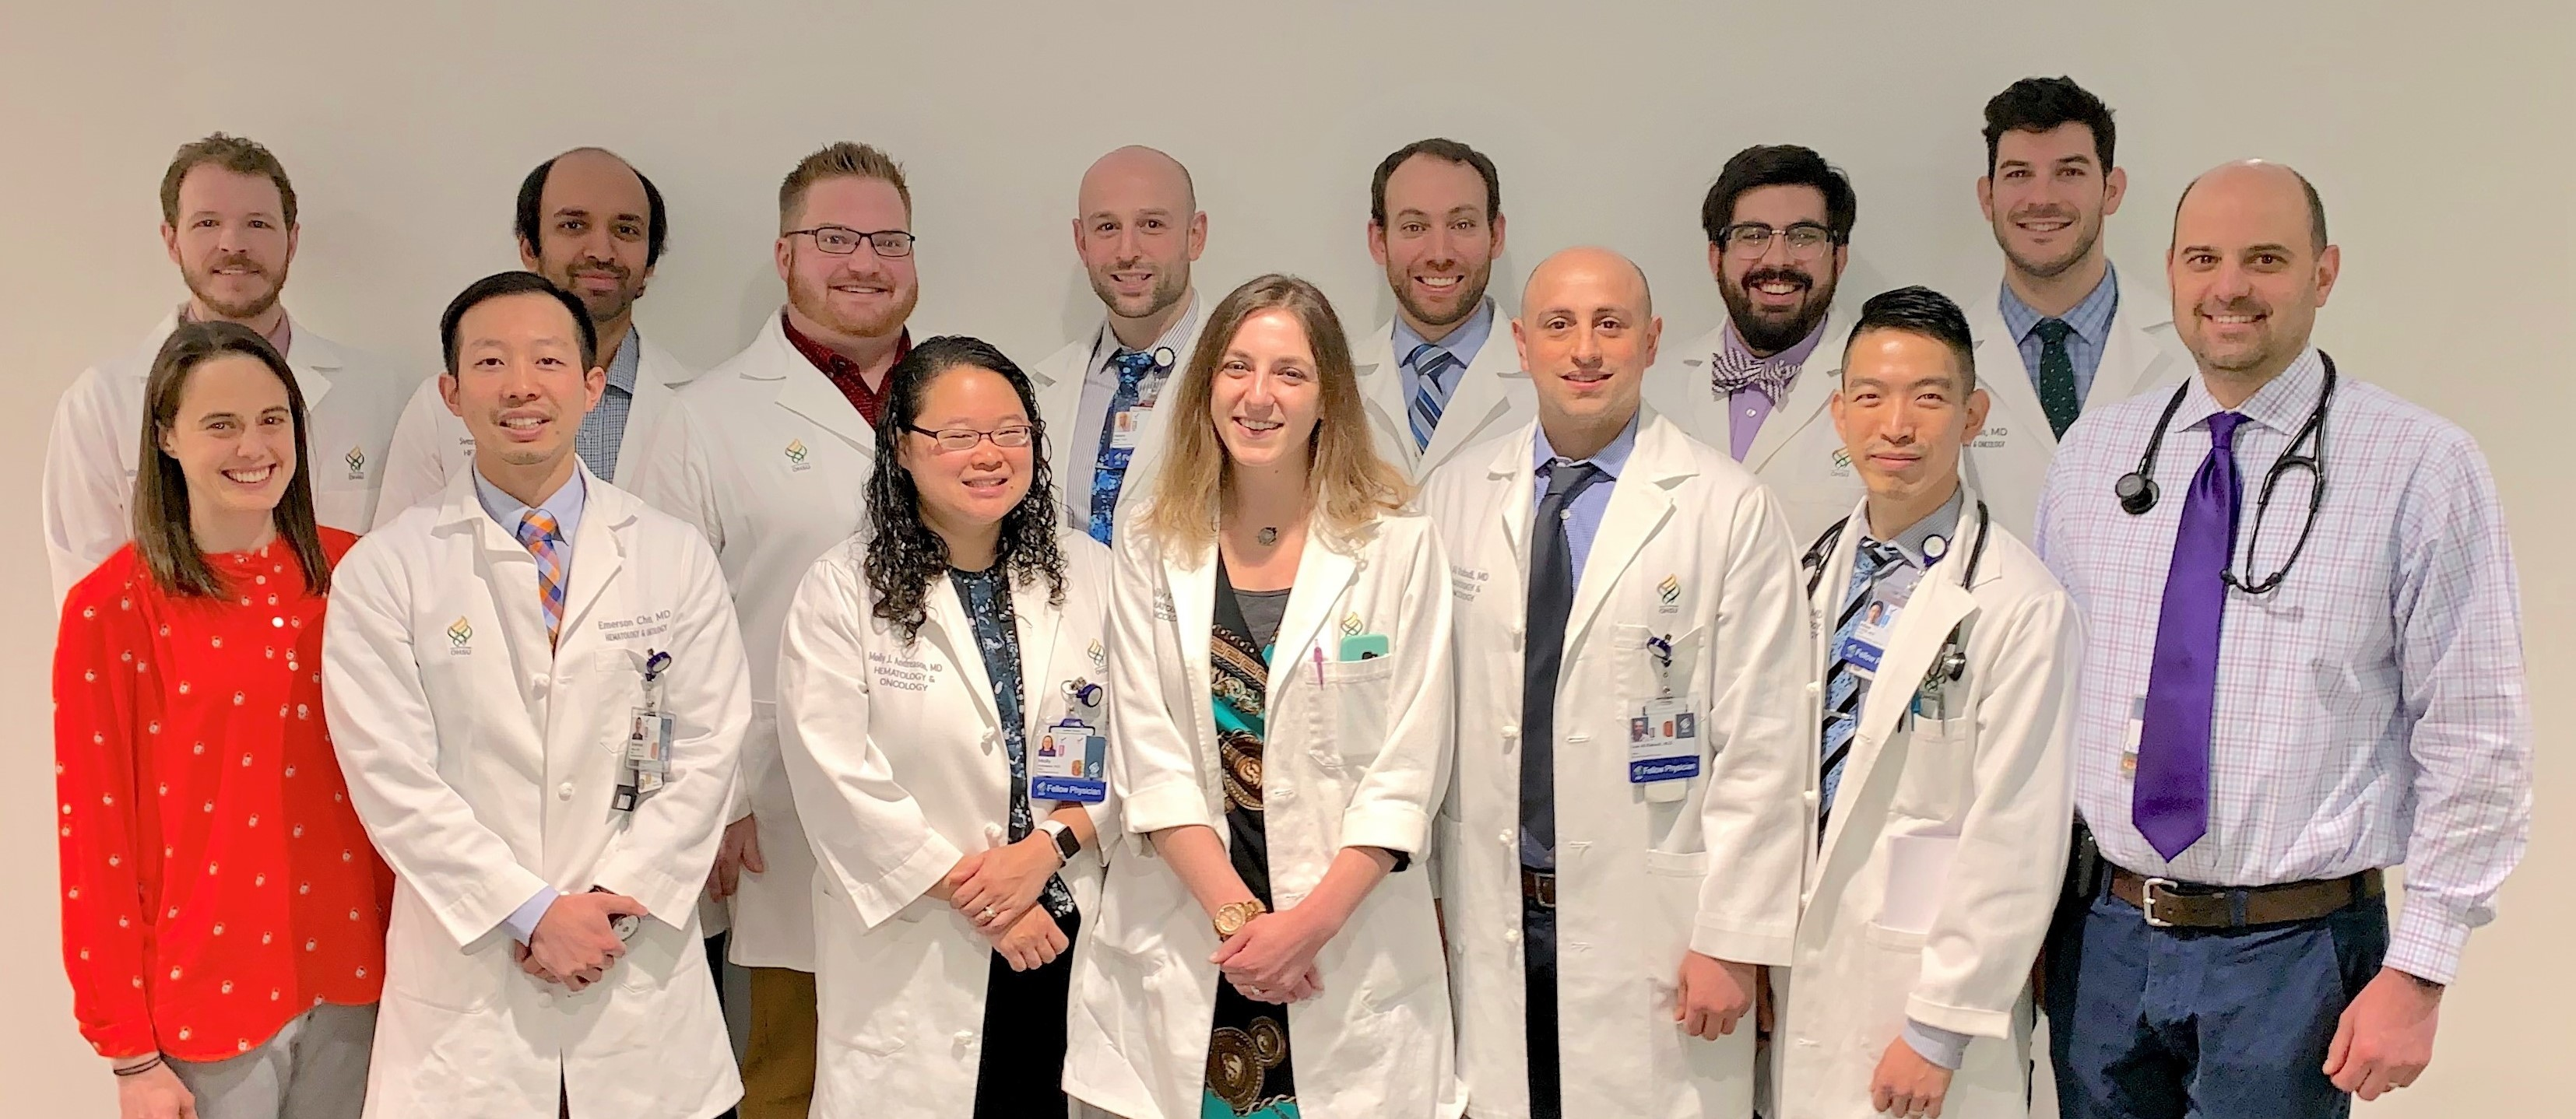 Current fellows of the OHSU Division of Hematology and Medical Oncology